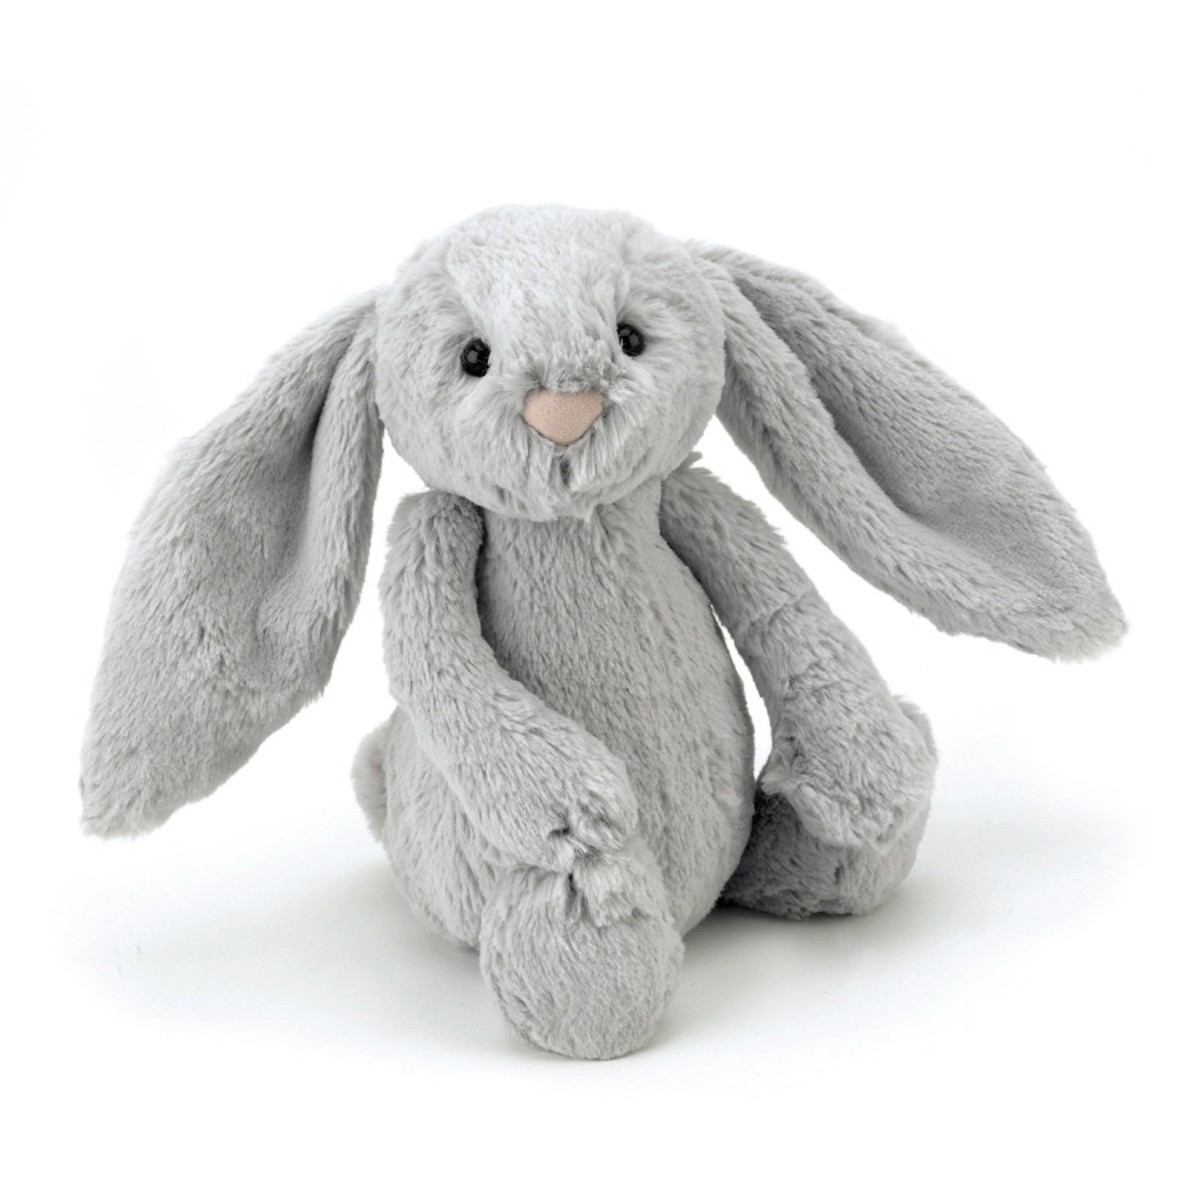 Peluche Bashful Silver Bunny - Medium Bashful Silver Bunny - Medium